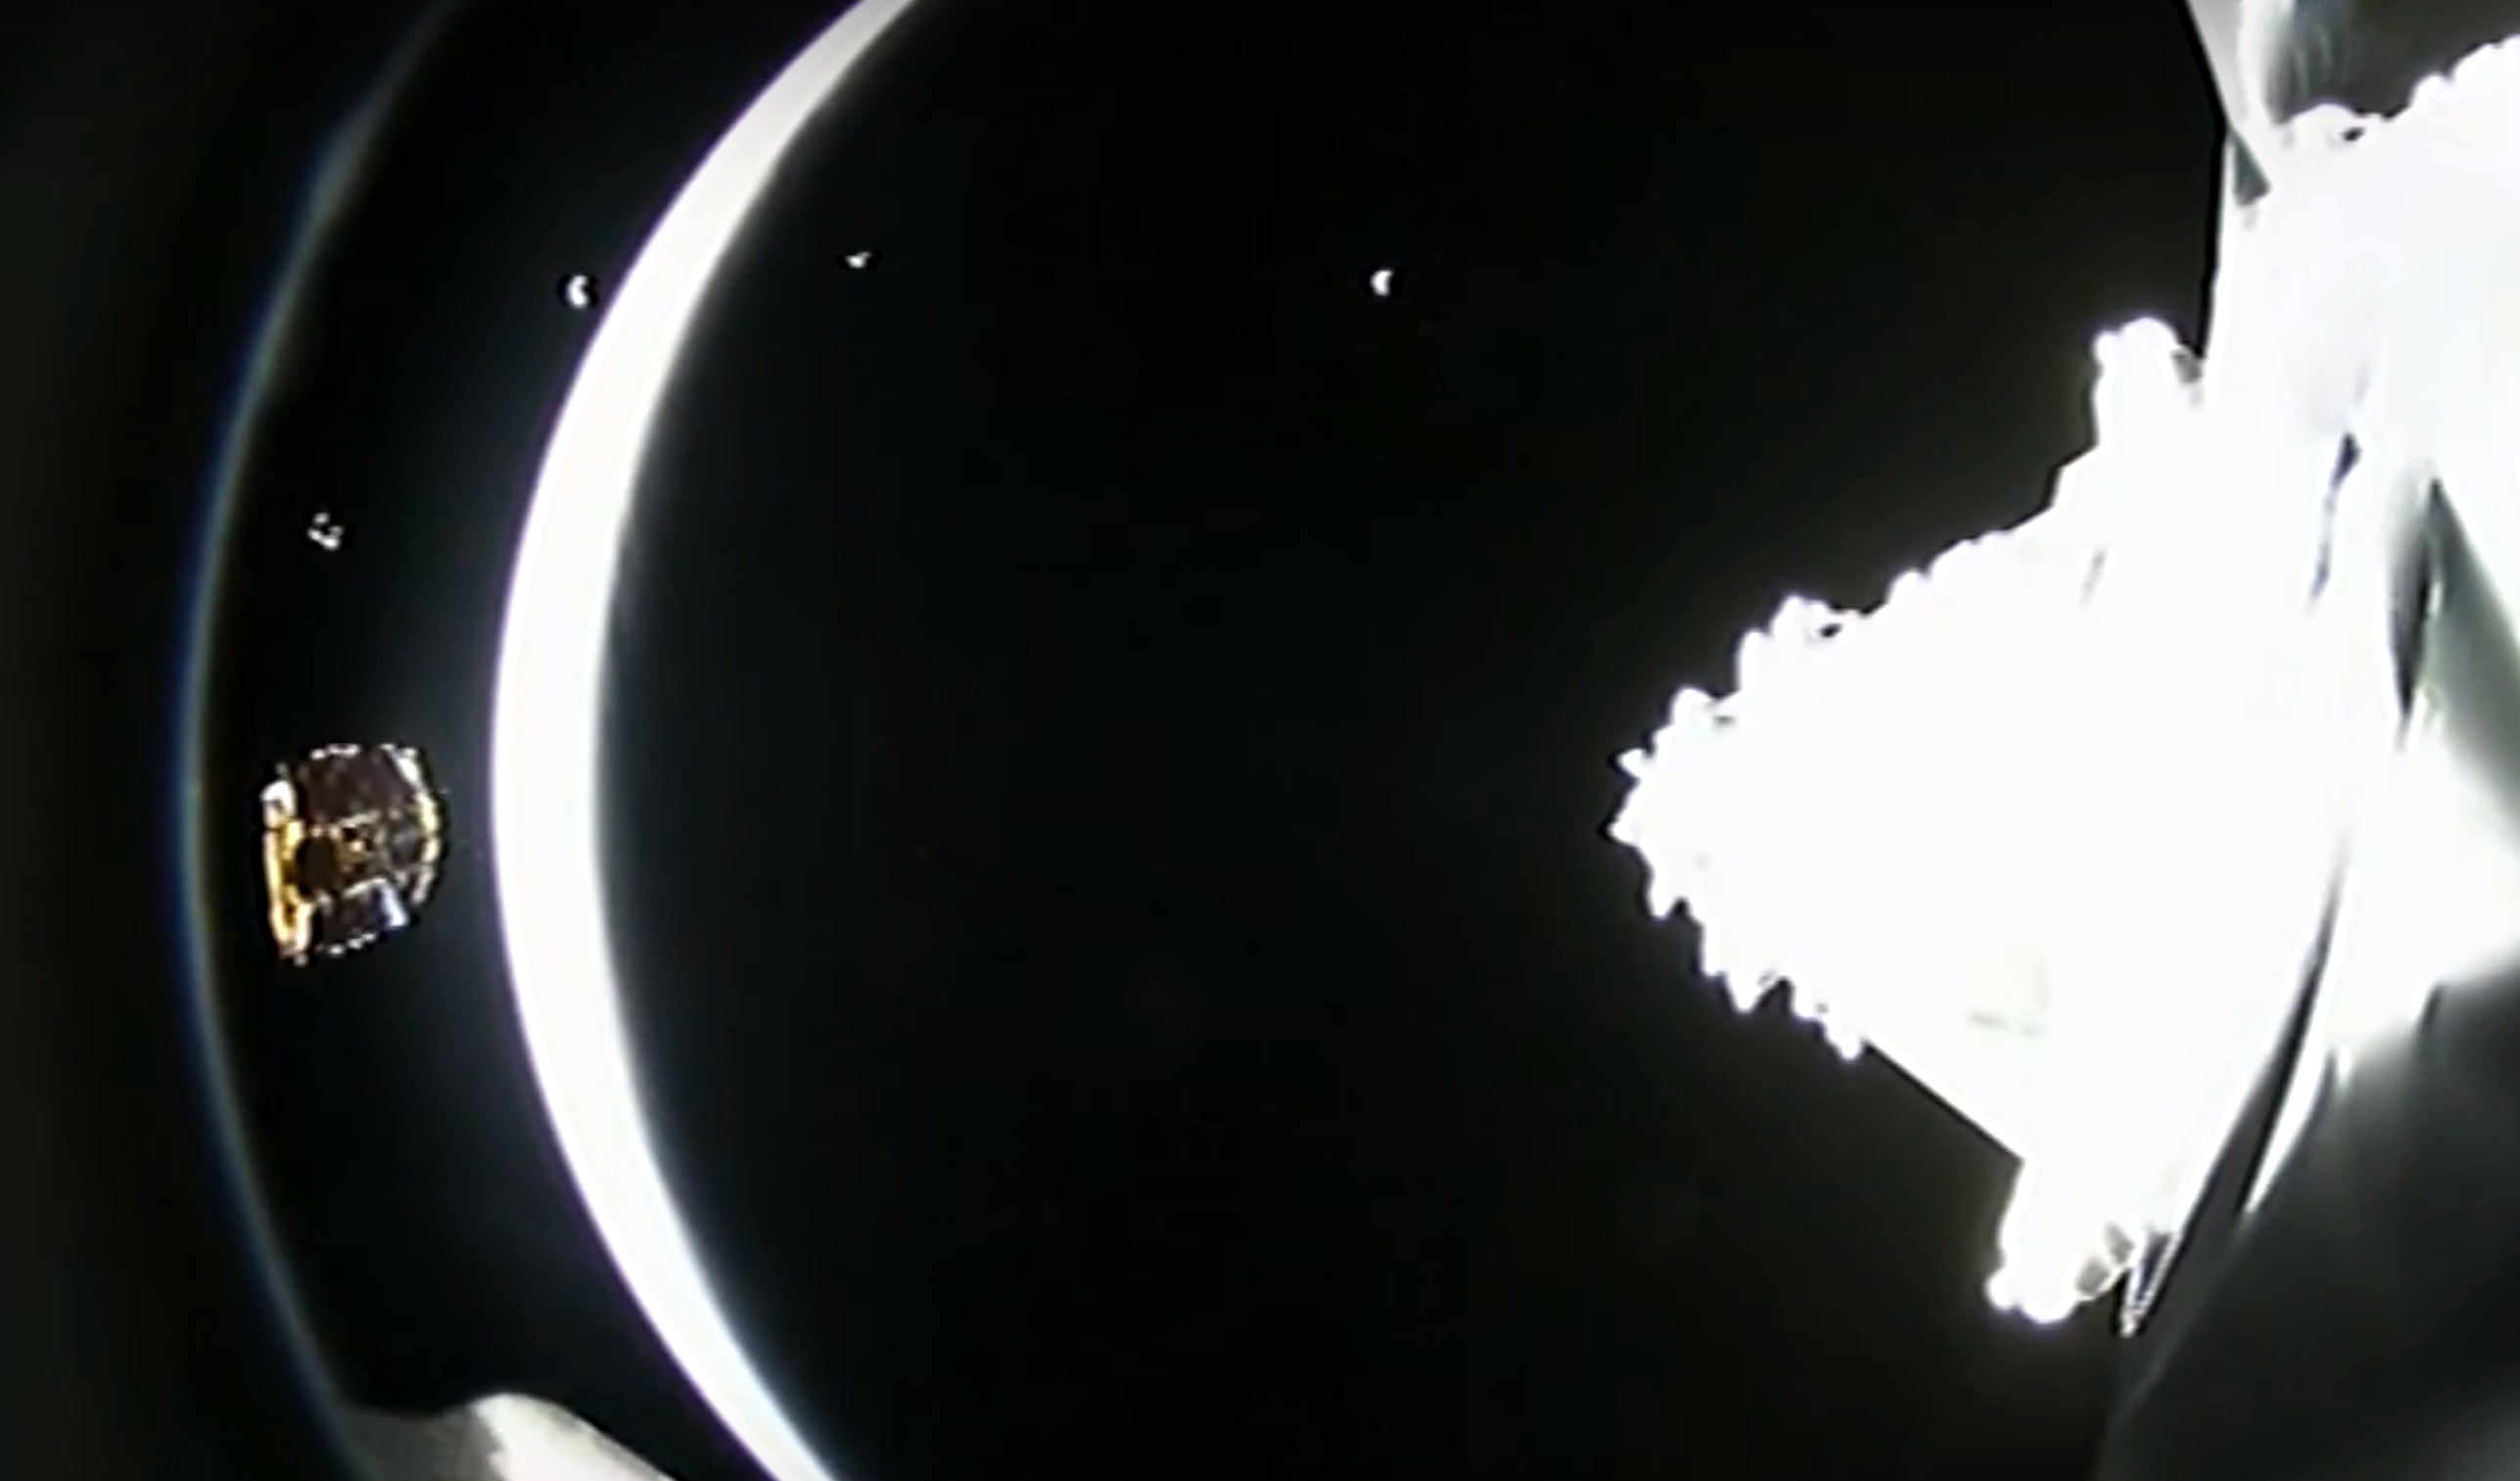 Iridium4 deployment arc 2 (SpaceX)